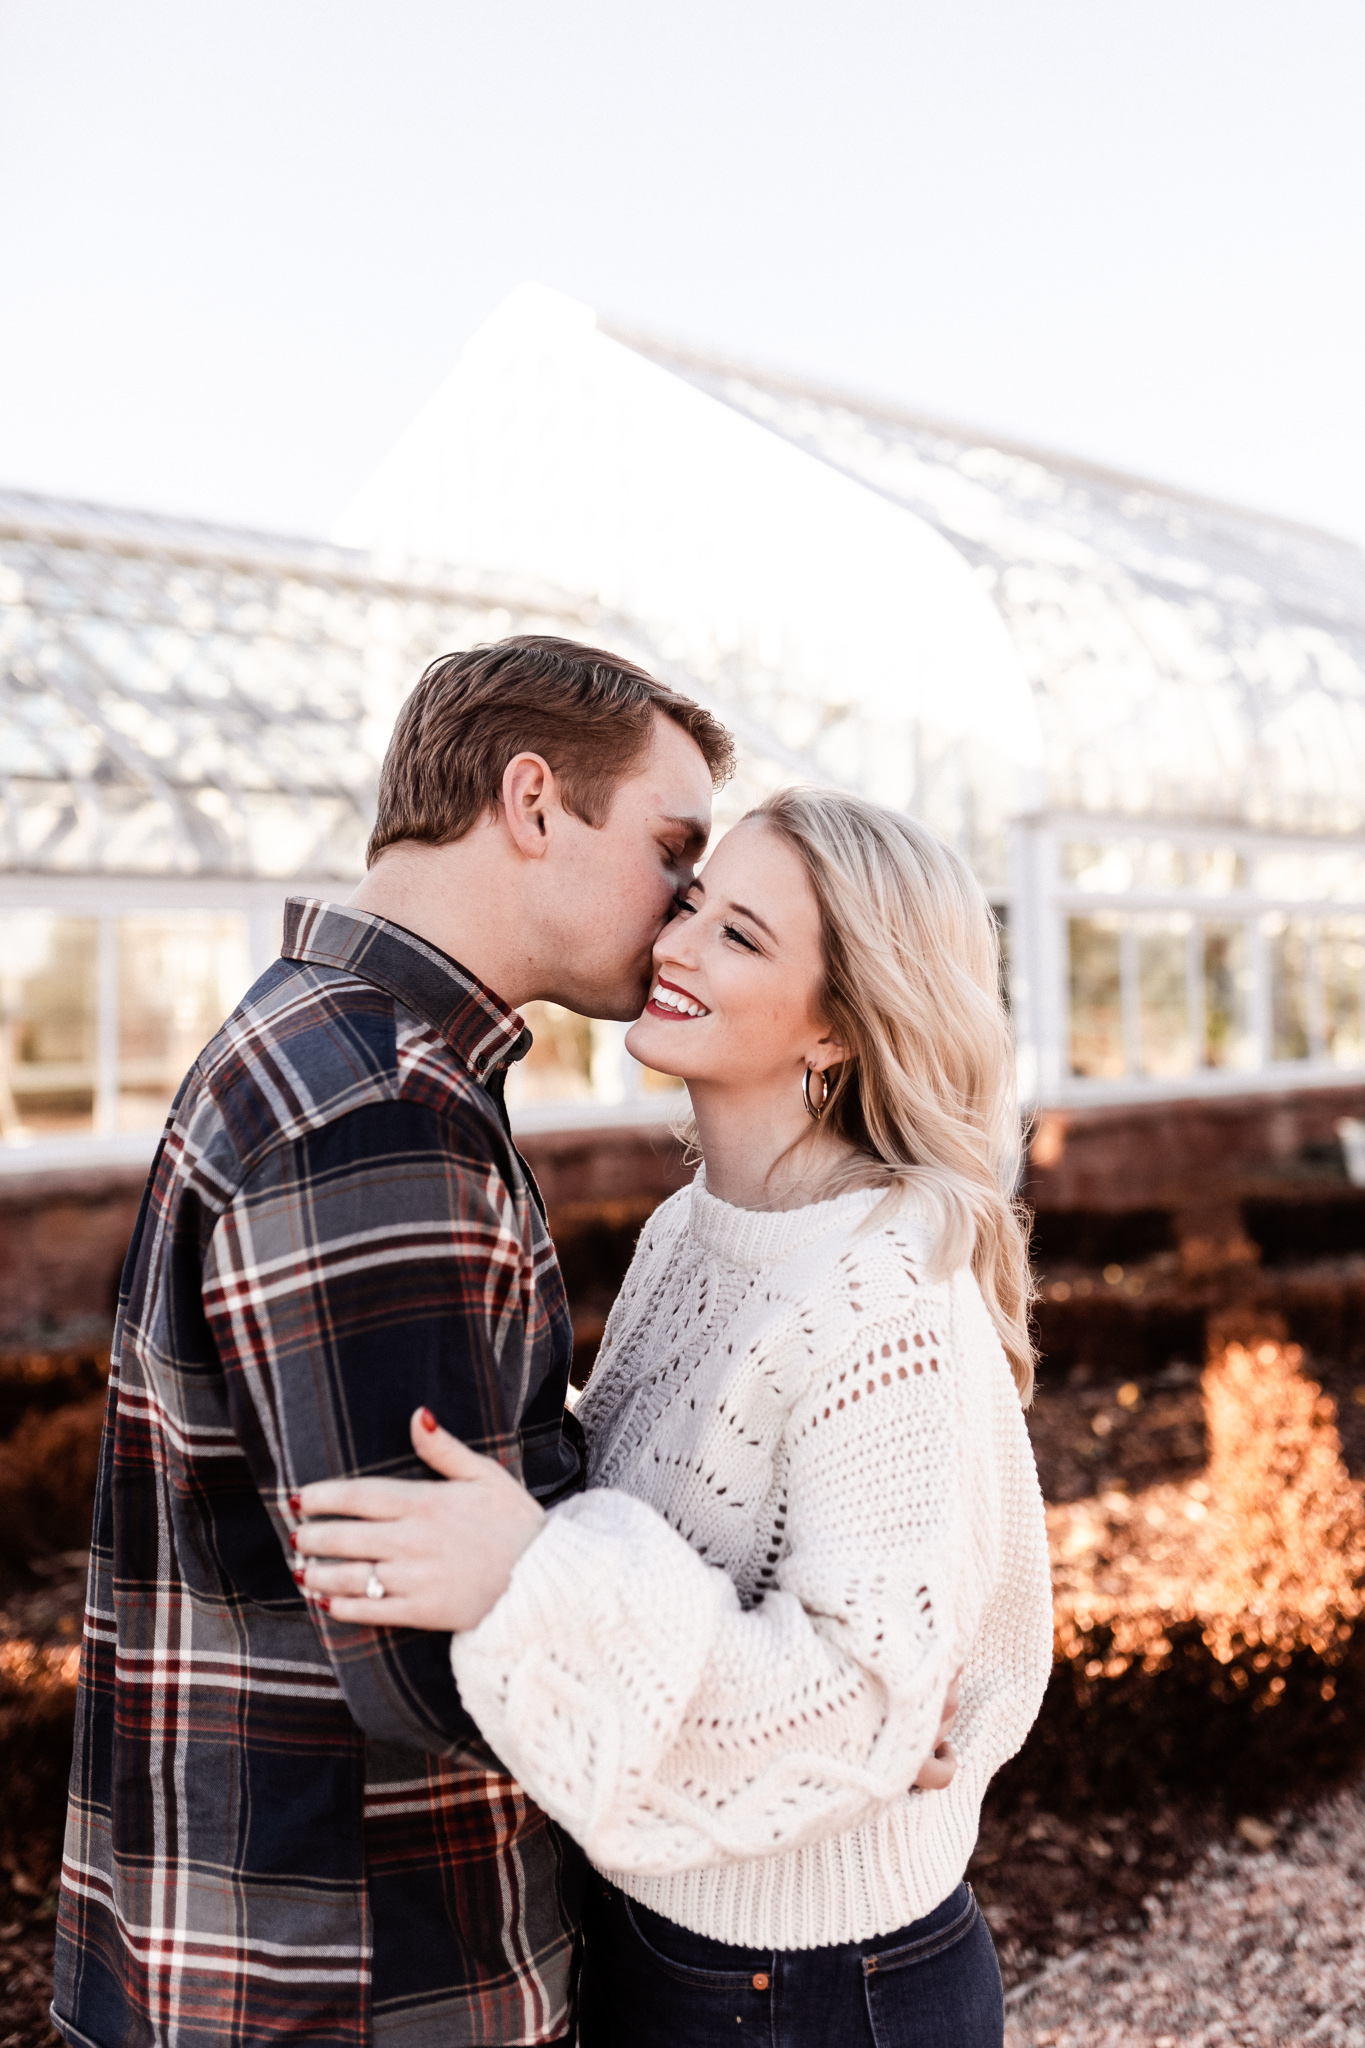 Foster + Alexa | Spring Garden Engagements | Oklahoma Wedding Photographer-4.jpg